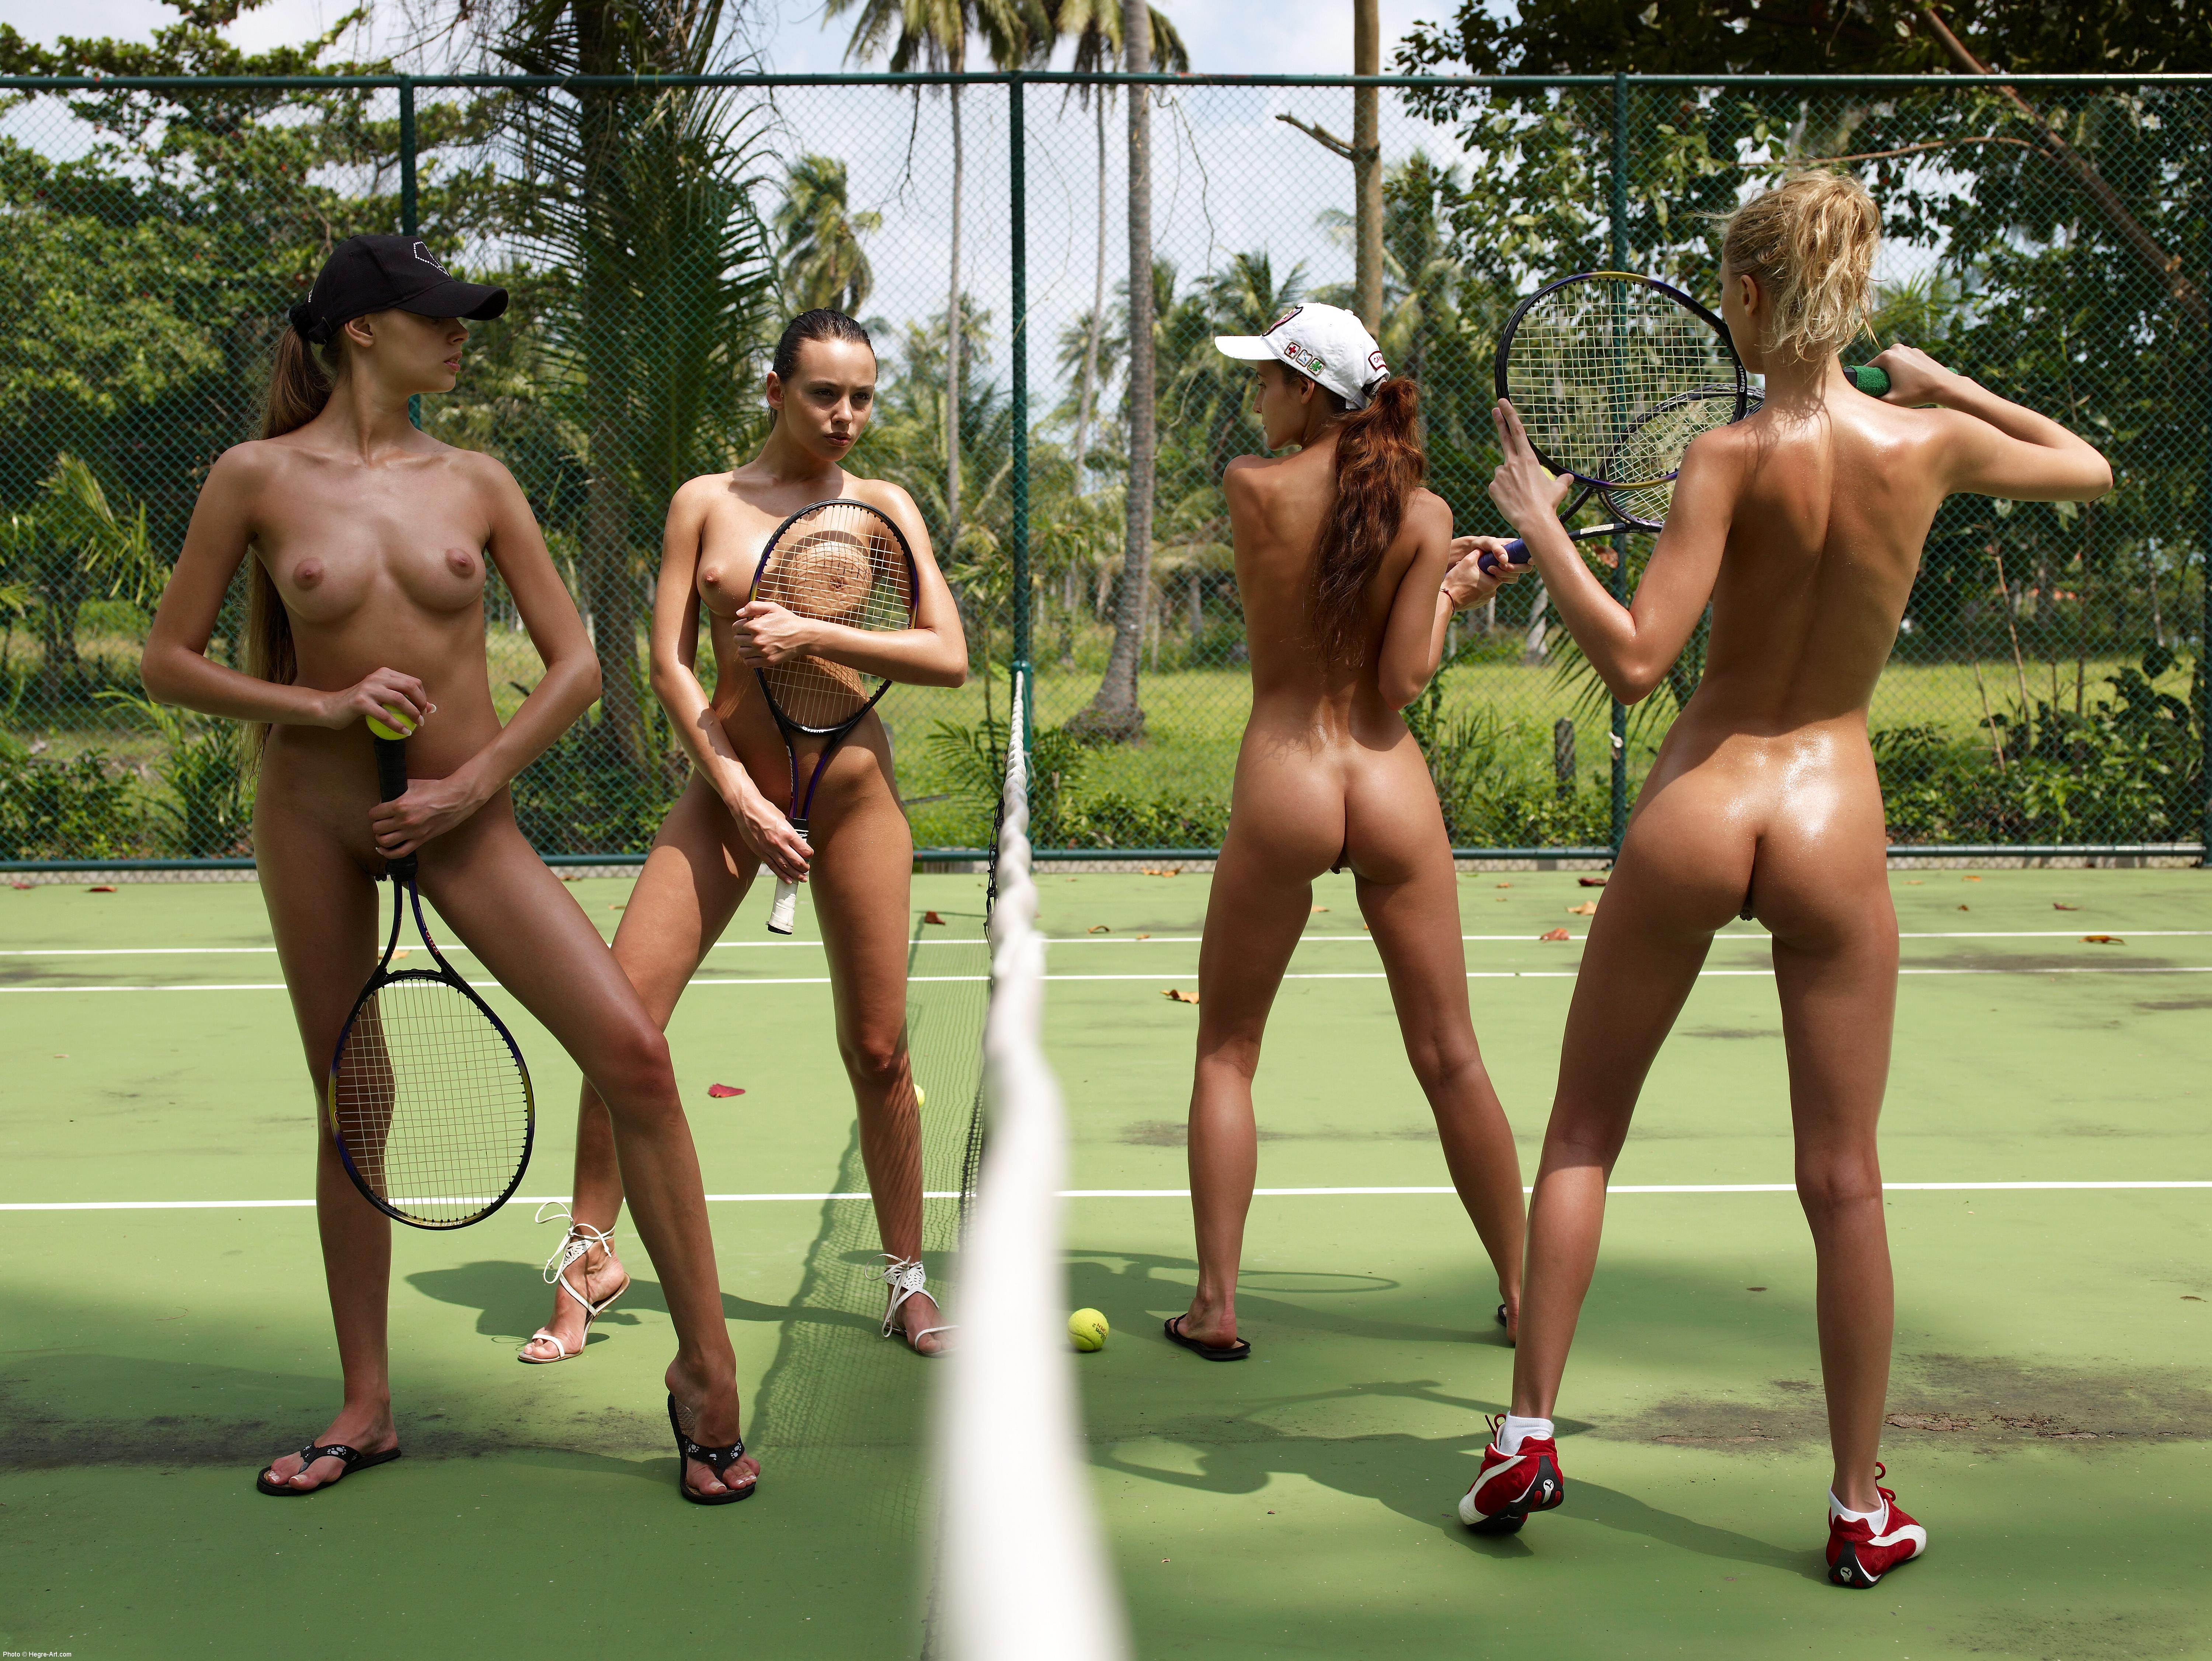 Nude women tennis players naked consider, that